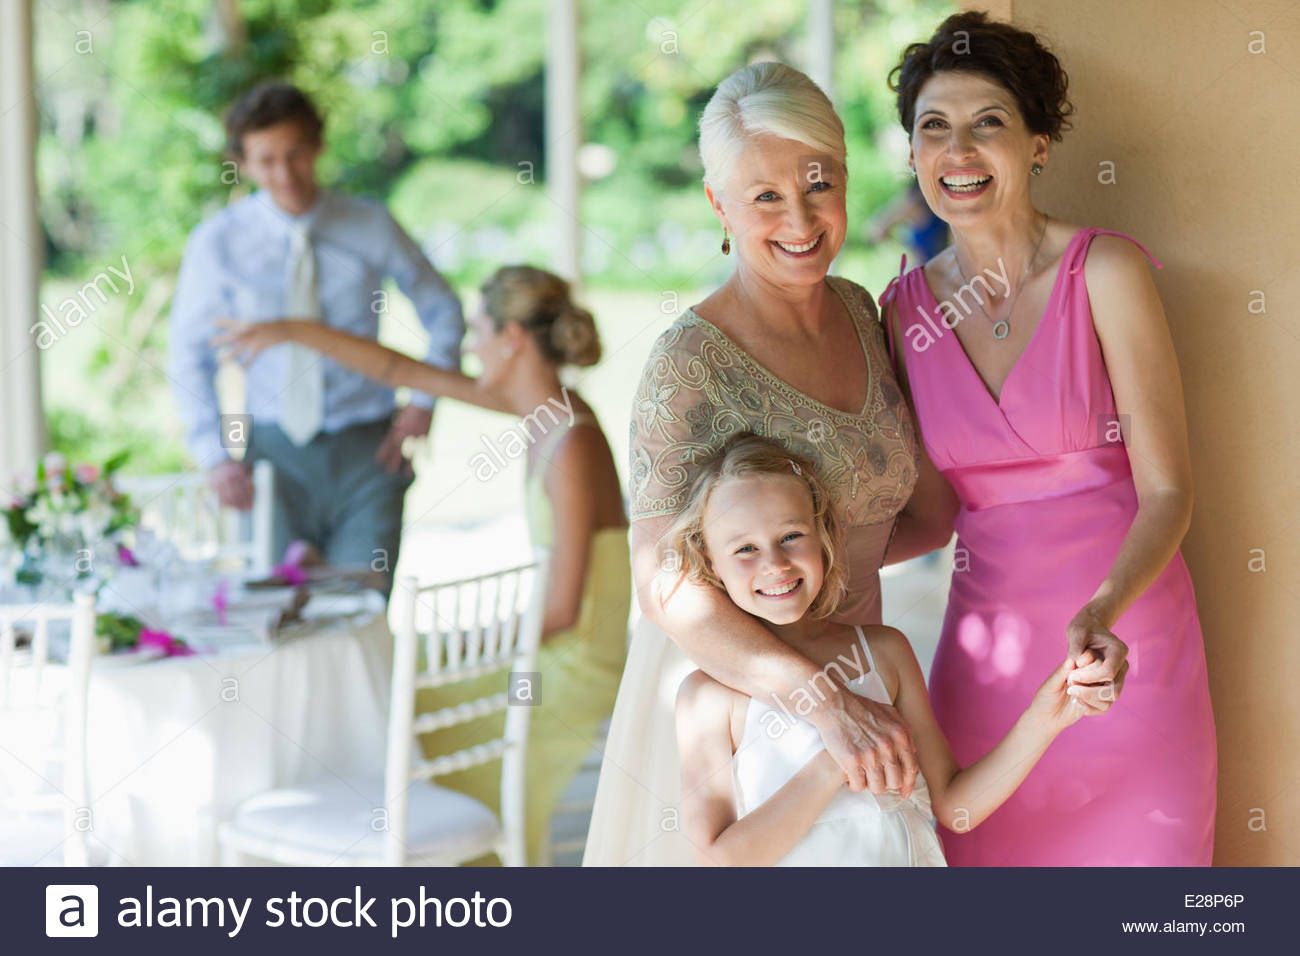 Family holding hands at wedding reception Photo Stock